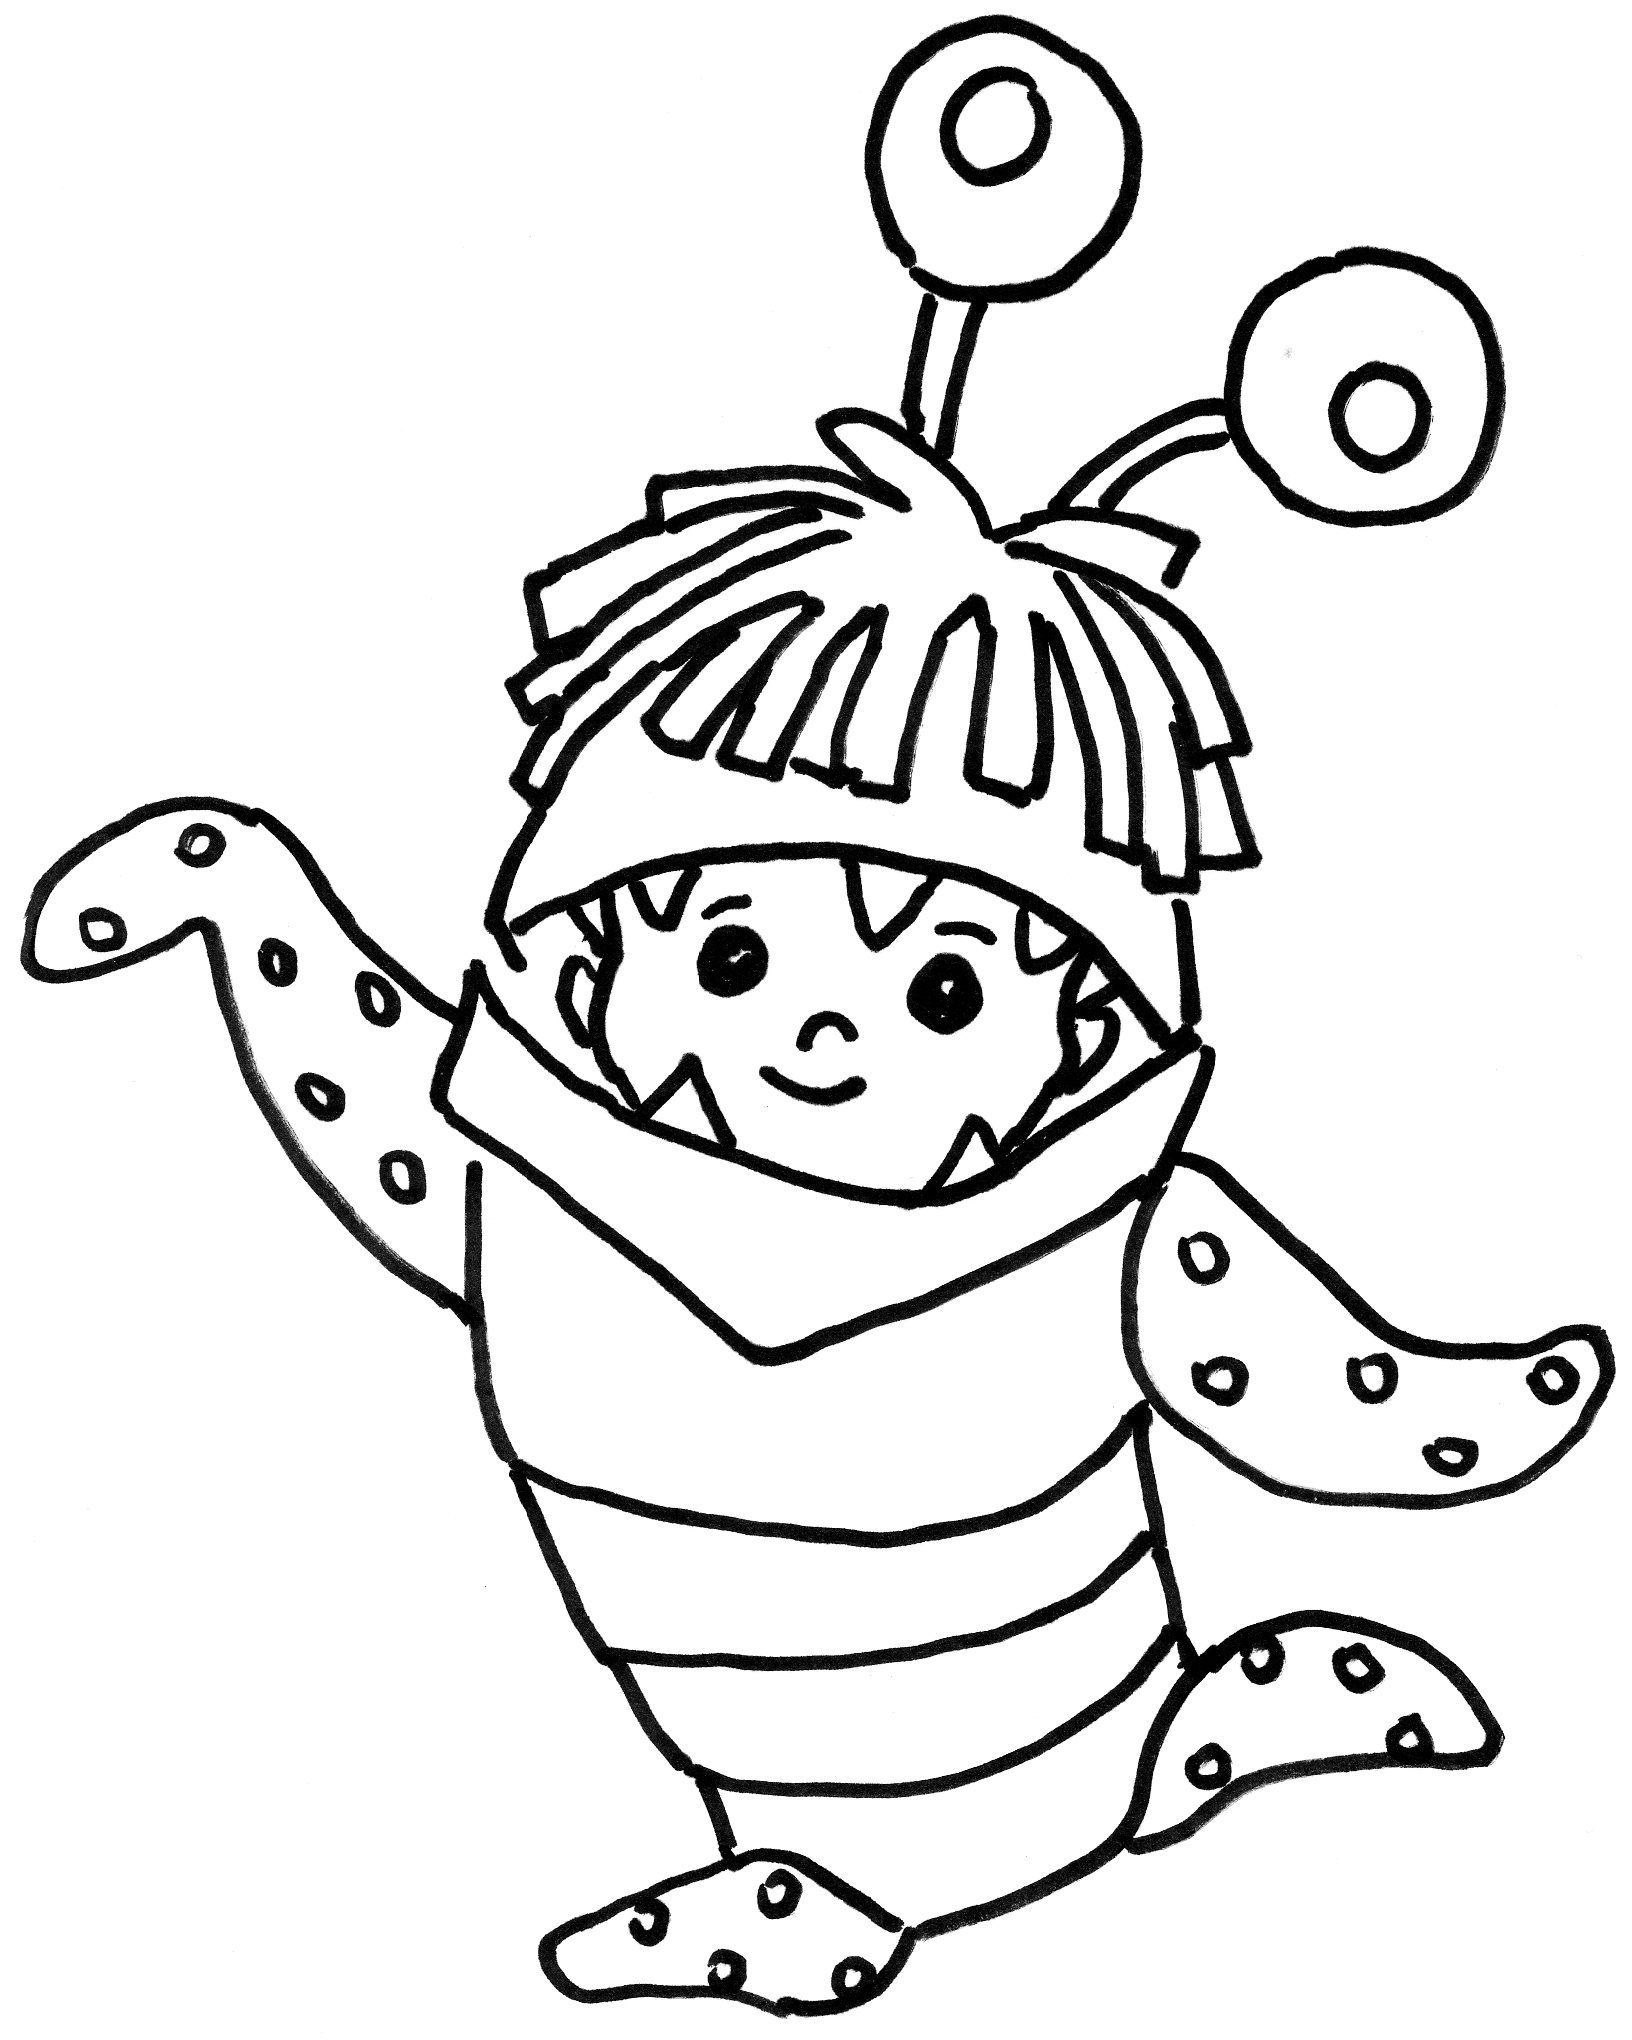 Monsters inc coloring pages only coloring pages for Monster coloring pages